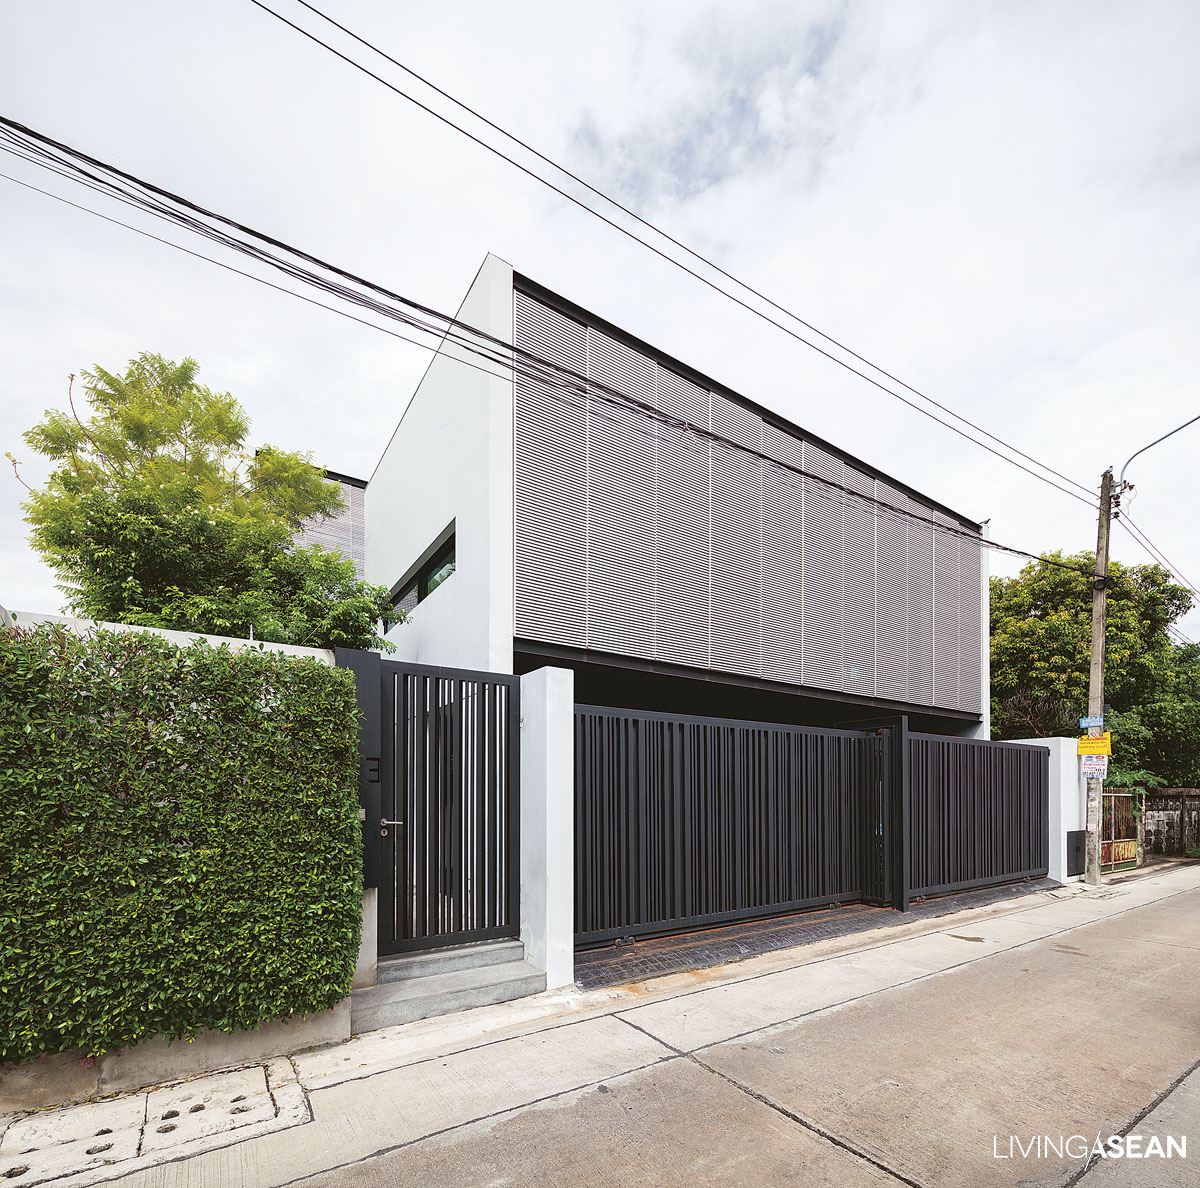 Tall aluminum latticework that makes the front façade protects the west-facing home from harsh sunlight. It provides a buffer against solar heat gain building up in the interior. On the street, black iron lattice fencing promotes natural air circulation and doubles as a privacy screen.